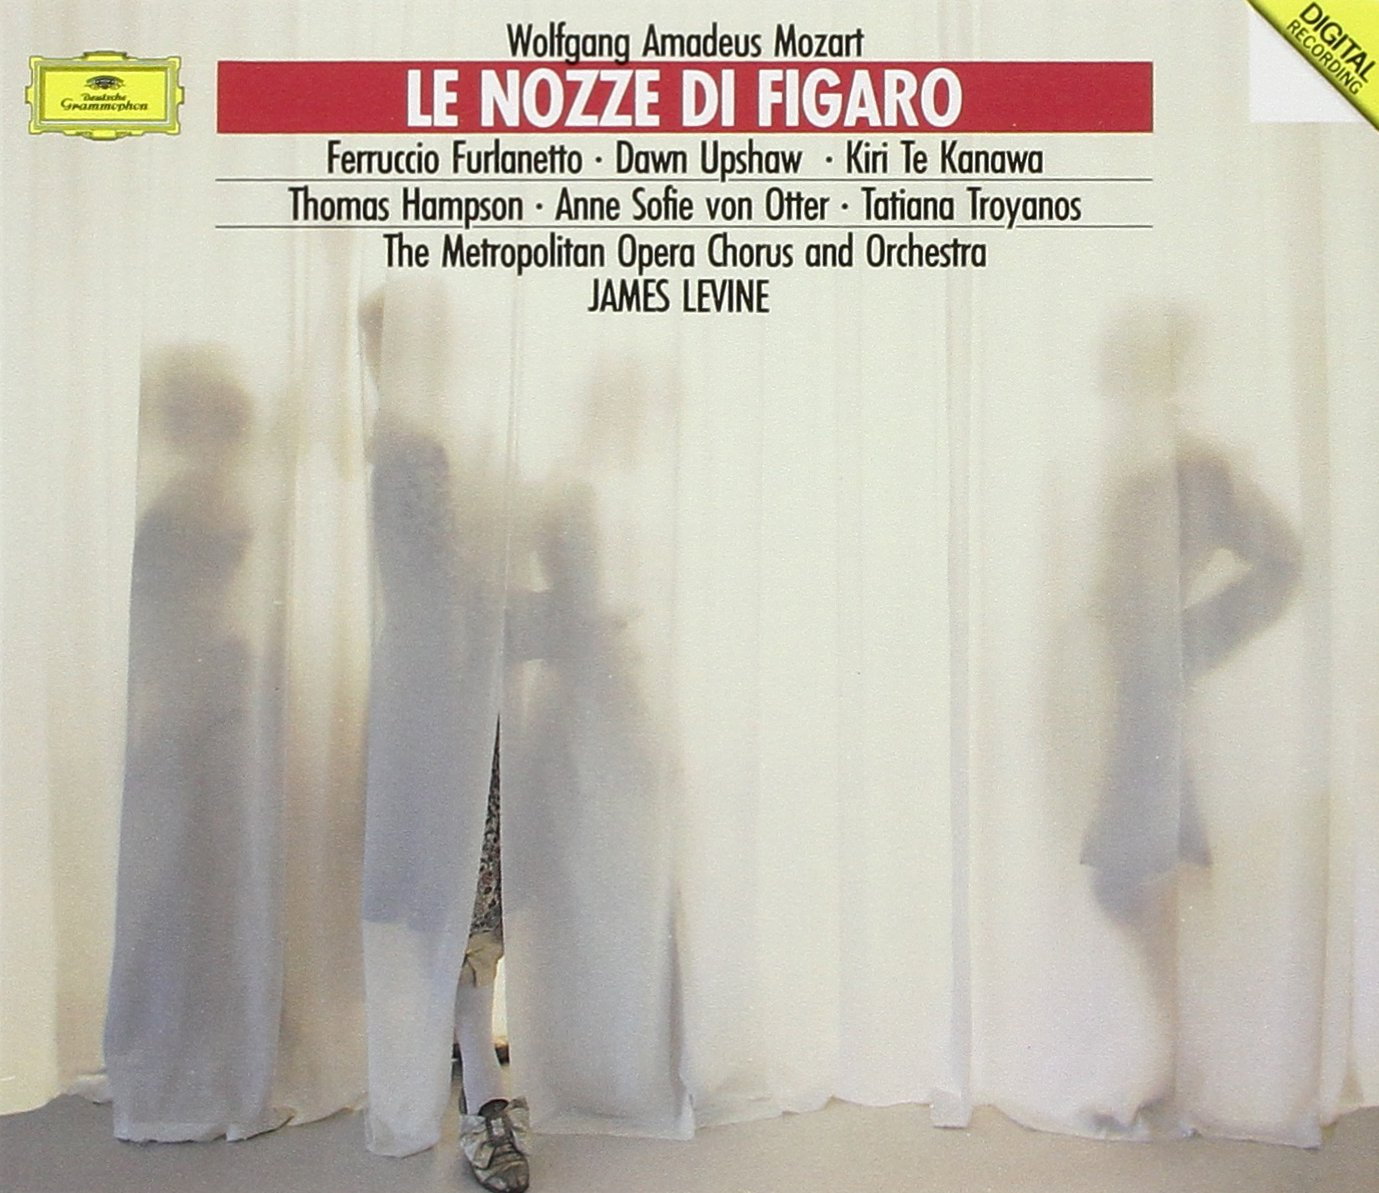 Le Nozze Di Figaro [3 CD Box Set] by DEUTSCHE GRAMMOPHON